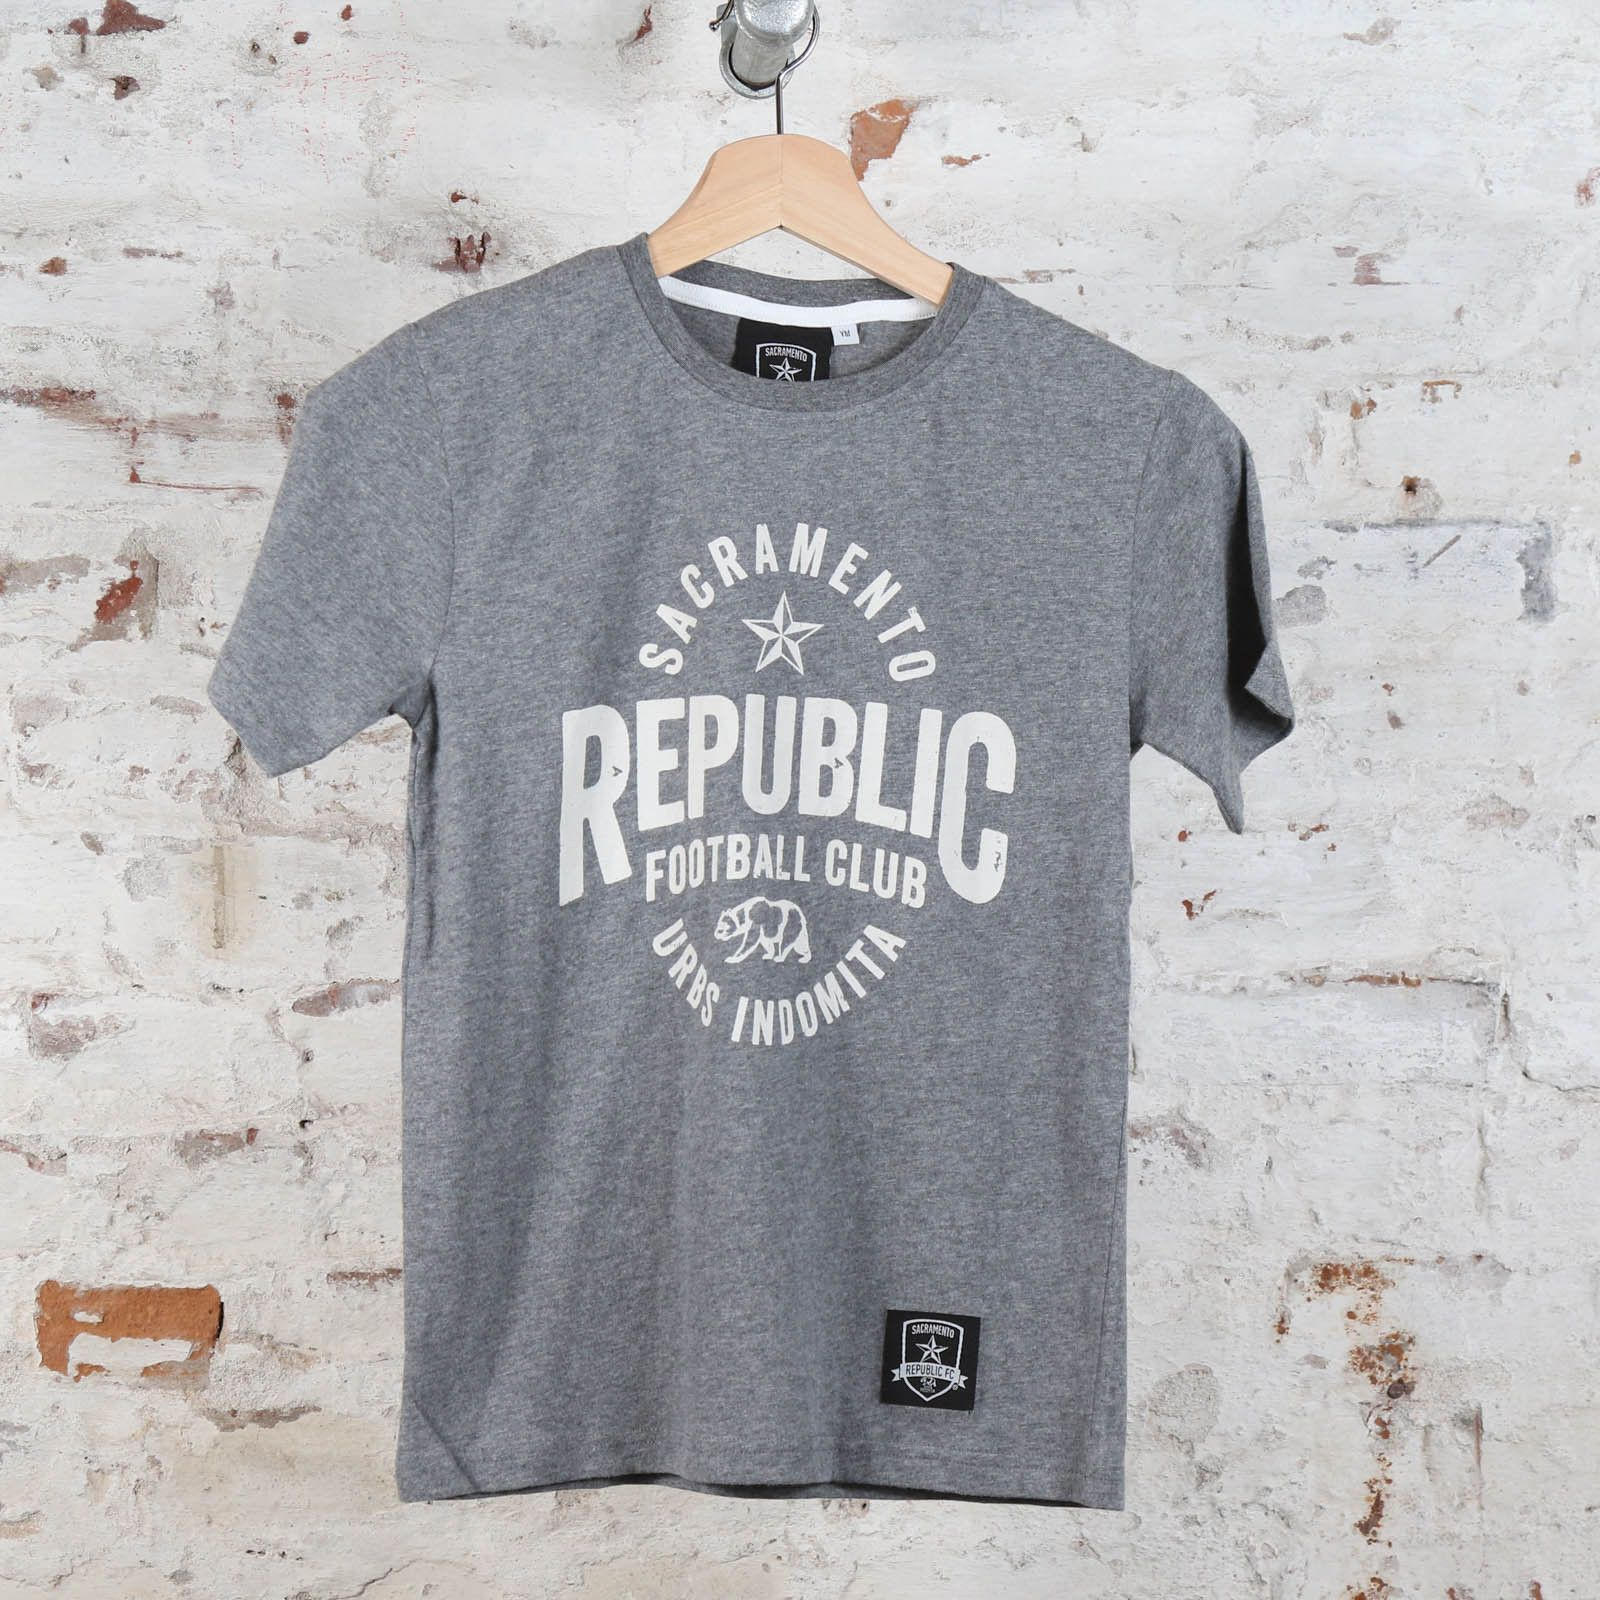 brand new 9cf15 61744 Youth Republic Football Club Tee by SDS